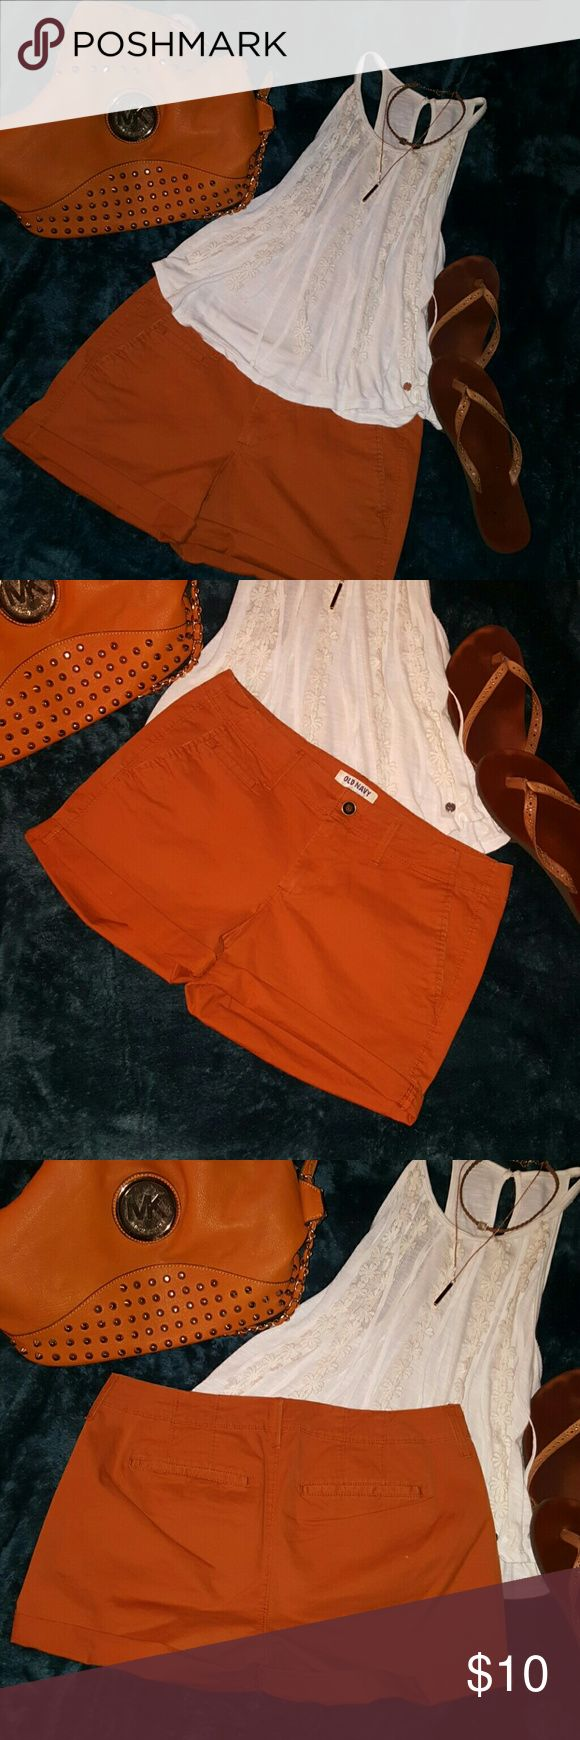 Saddle Brown Shorts Old Navy boyfriend shorts! Very cool saddle brown color that makes you look even more tan in the summer (just a perk!). Very comfortable and pairs with anything! Throw a cute denim jacket with the outfit shown and ur rockin' an eye poppin style! Old Navy Shorts